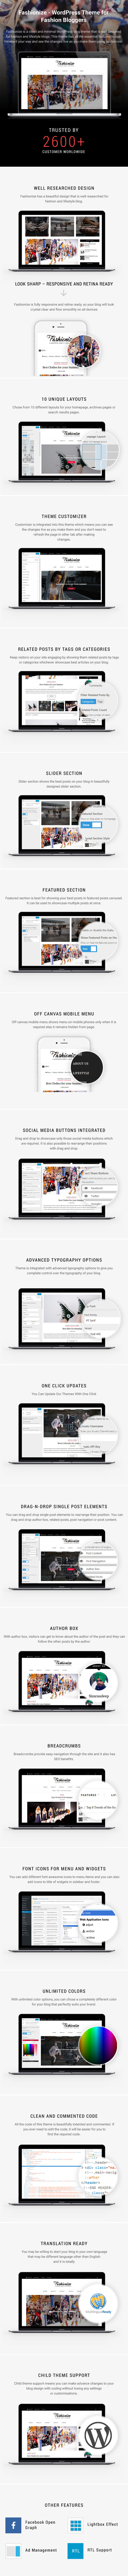 Fashionize - Responsive WordPress Blog Theme - 2